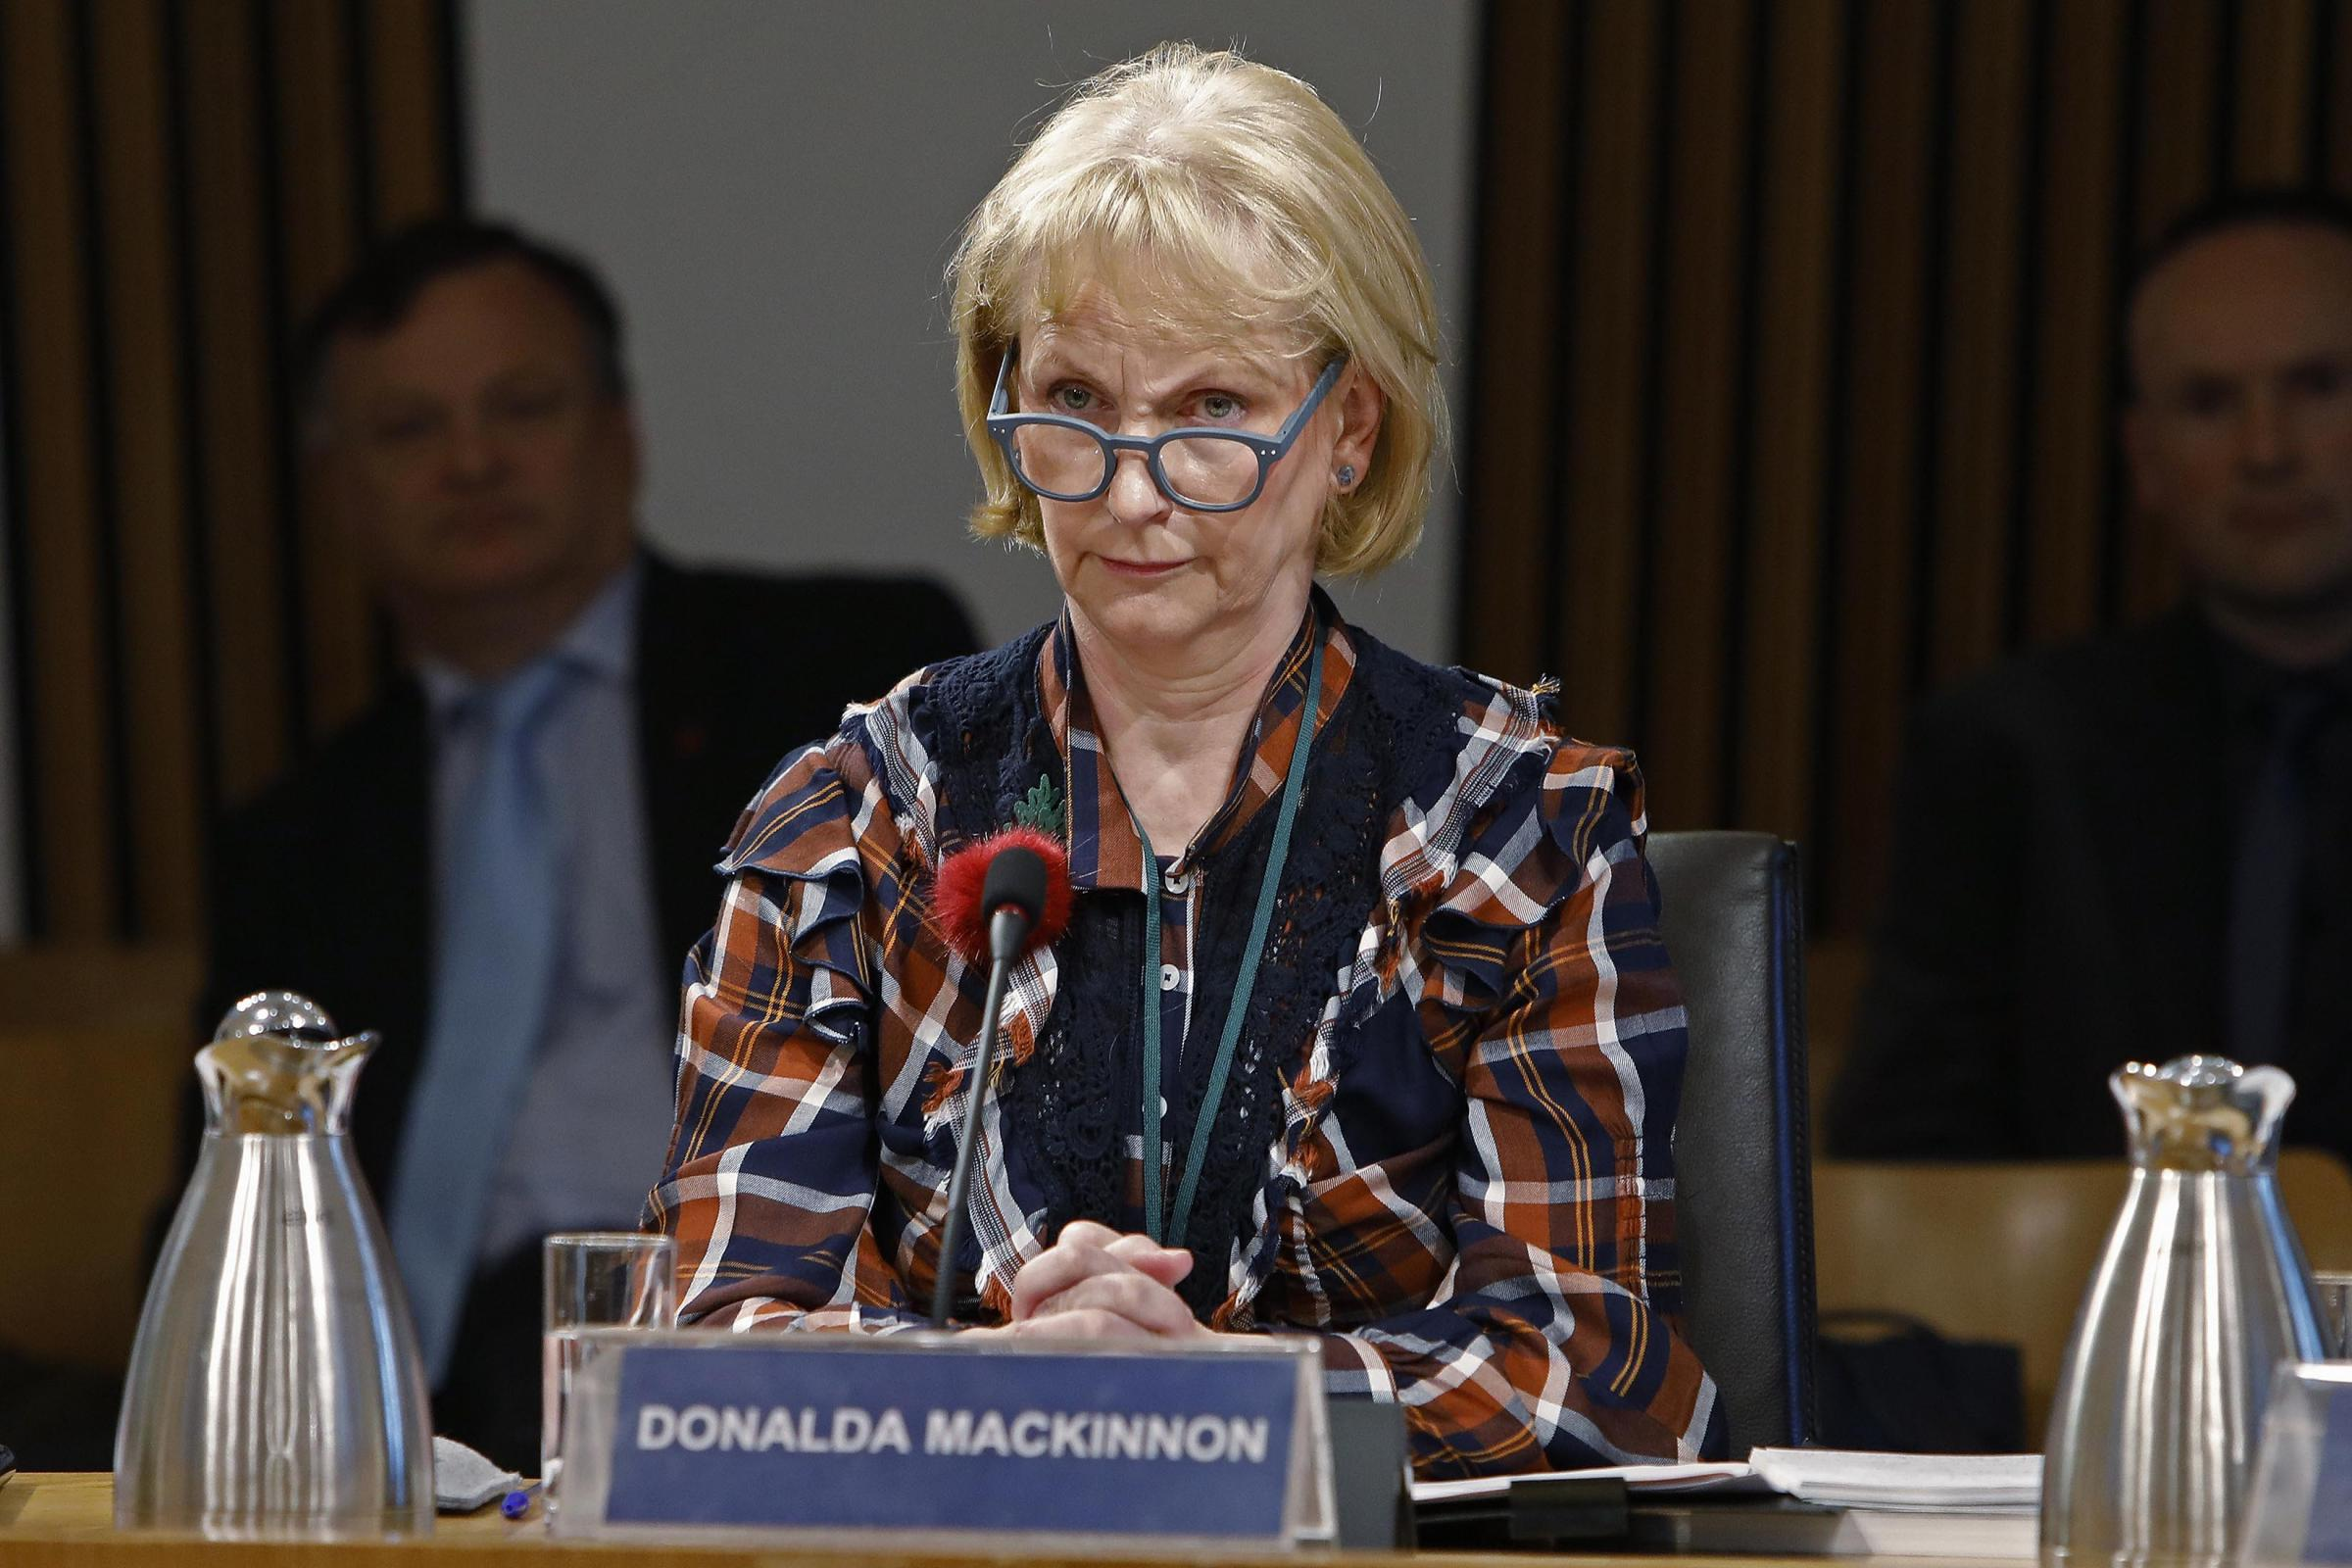 Donalda MacKinnon failed in her mission to boost trust in the BBC